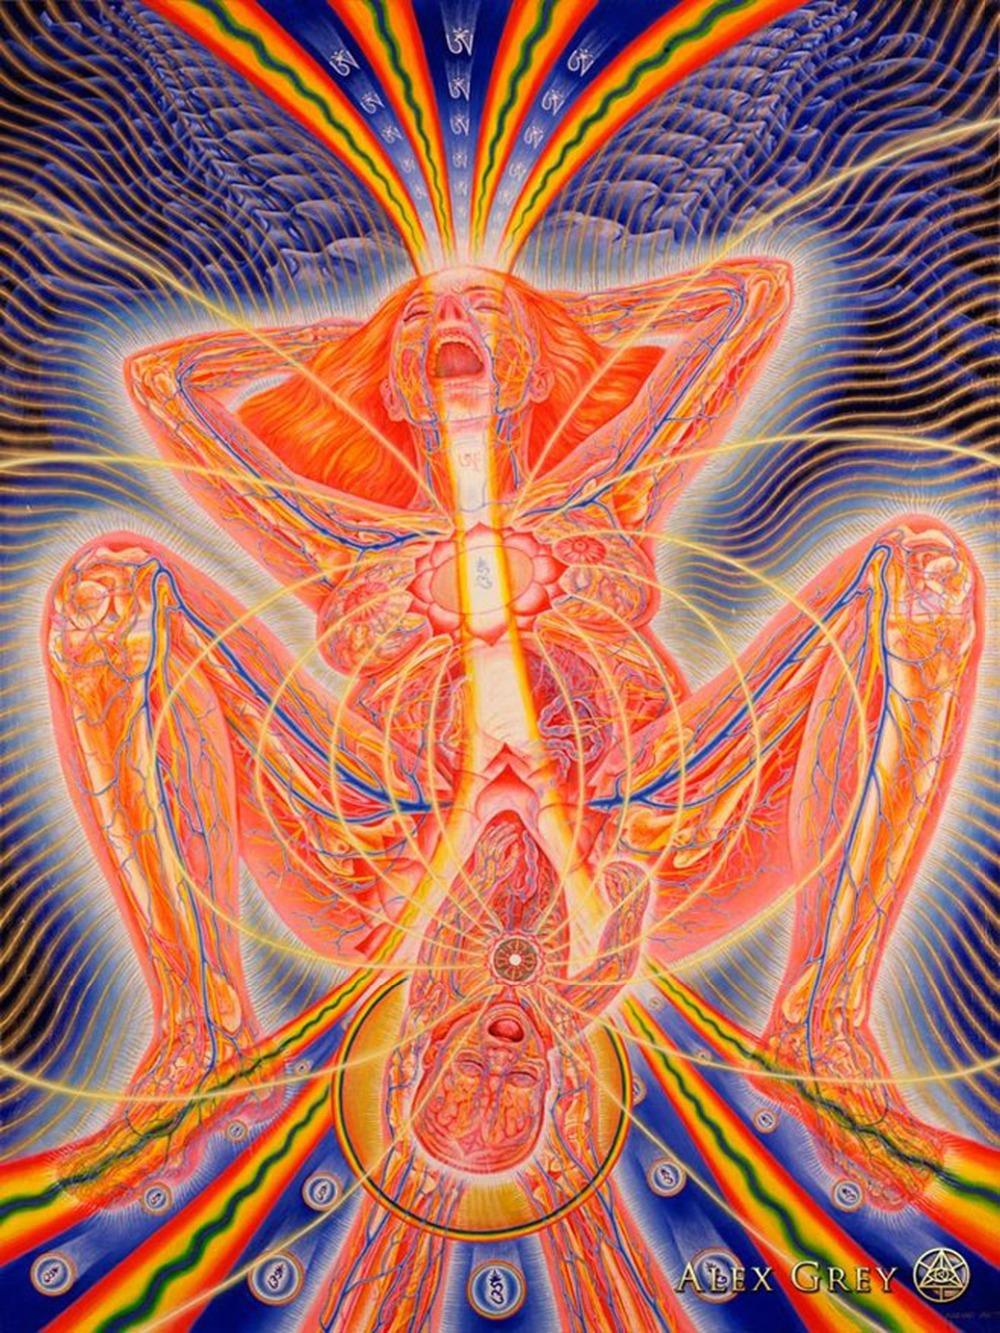 poster 32x24 17x13 Trippy Alex Grey Wall Poster Print Home Decor Wall  Stickers poster Decal--029